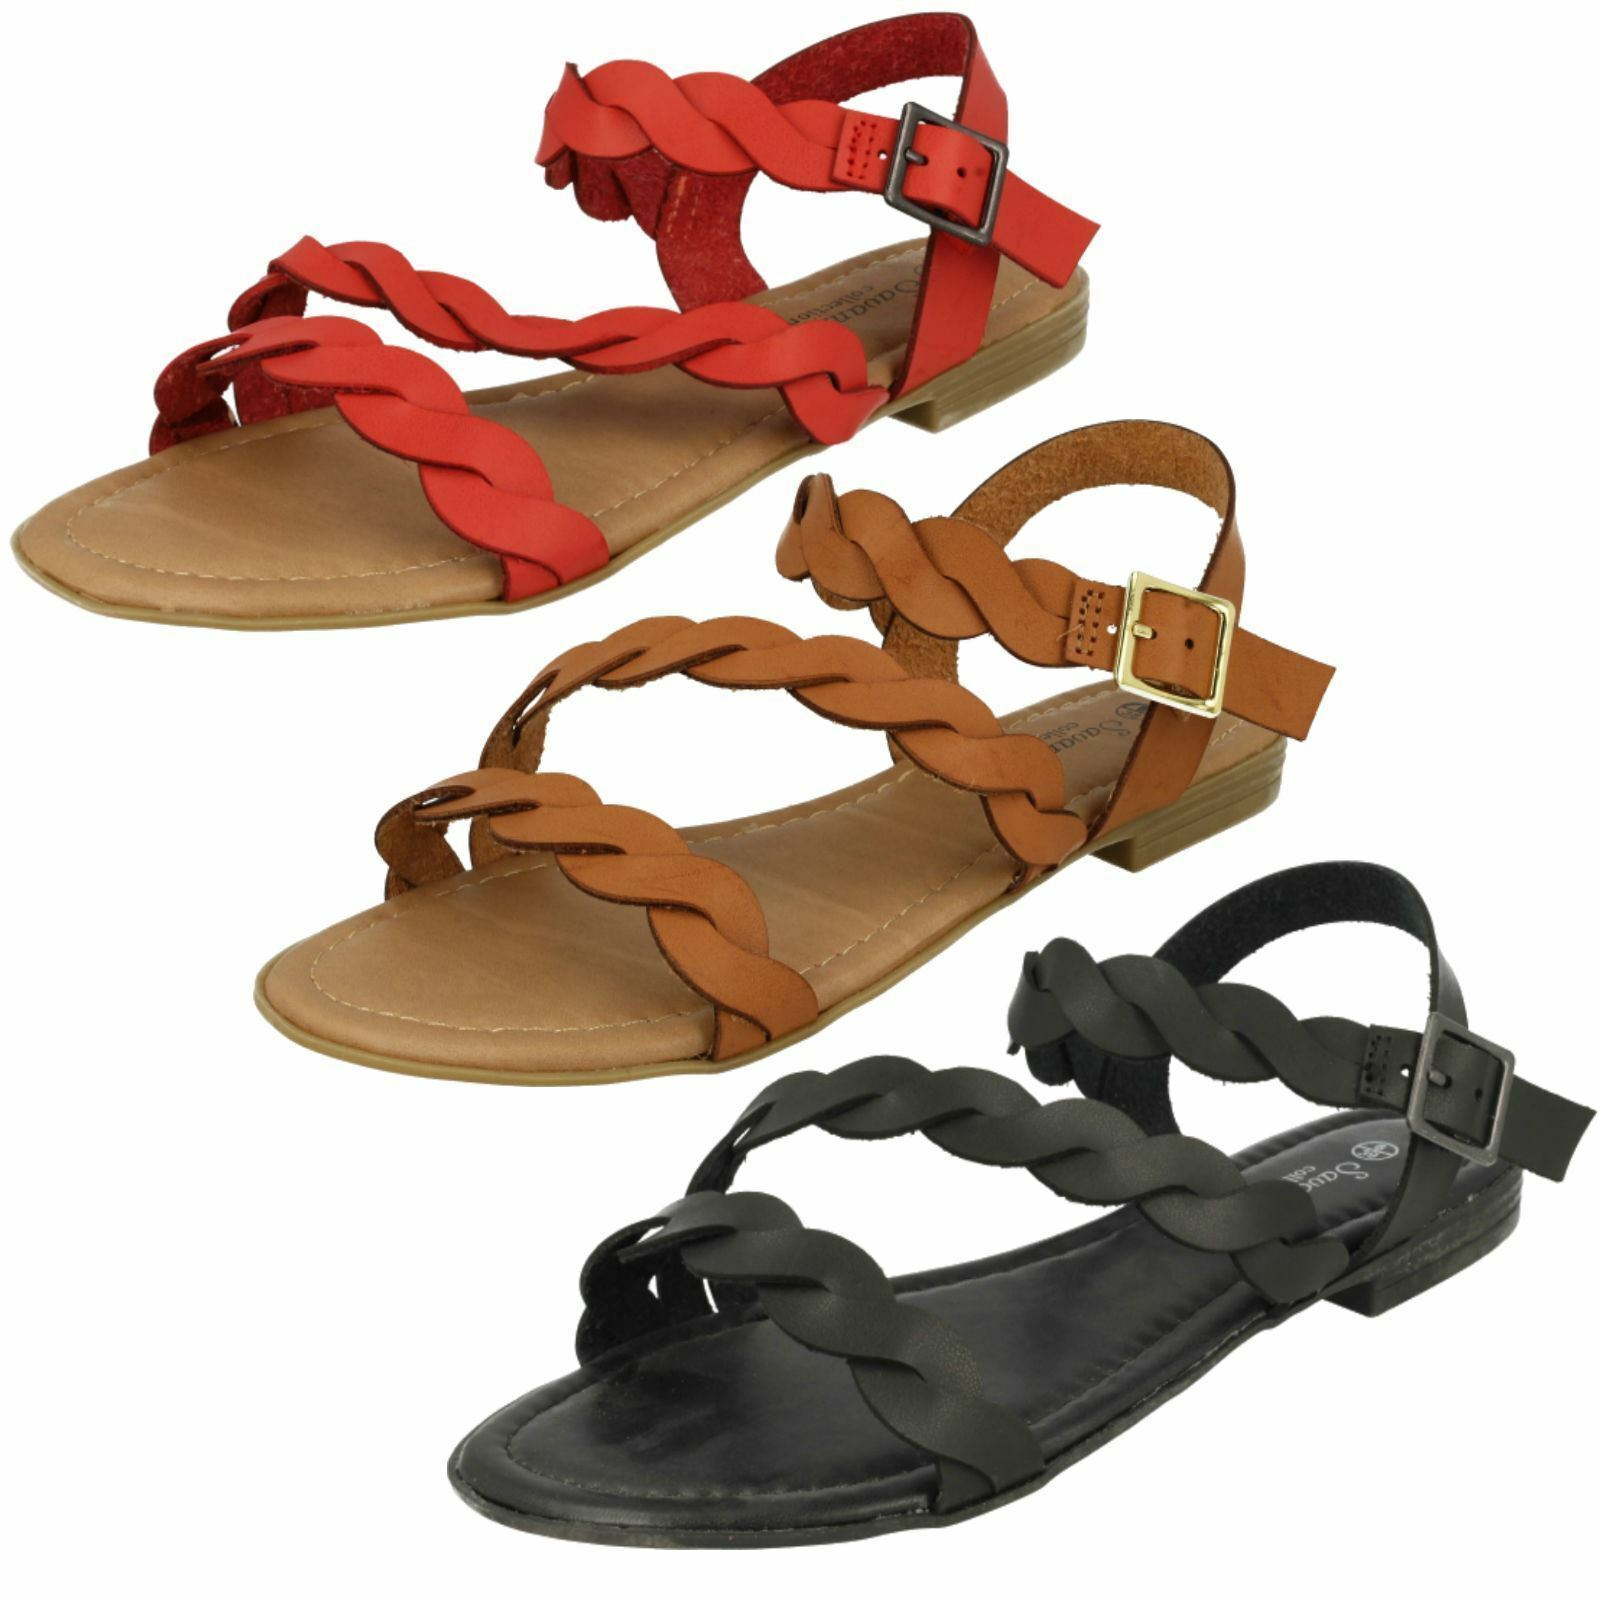 Man/Woman Ladies Savannah superior Collection Synthetic Sandals F00061 superior Savannah International choice Elegant and stable packaging 9d7985